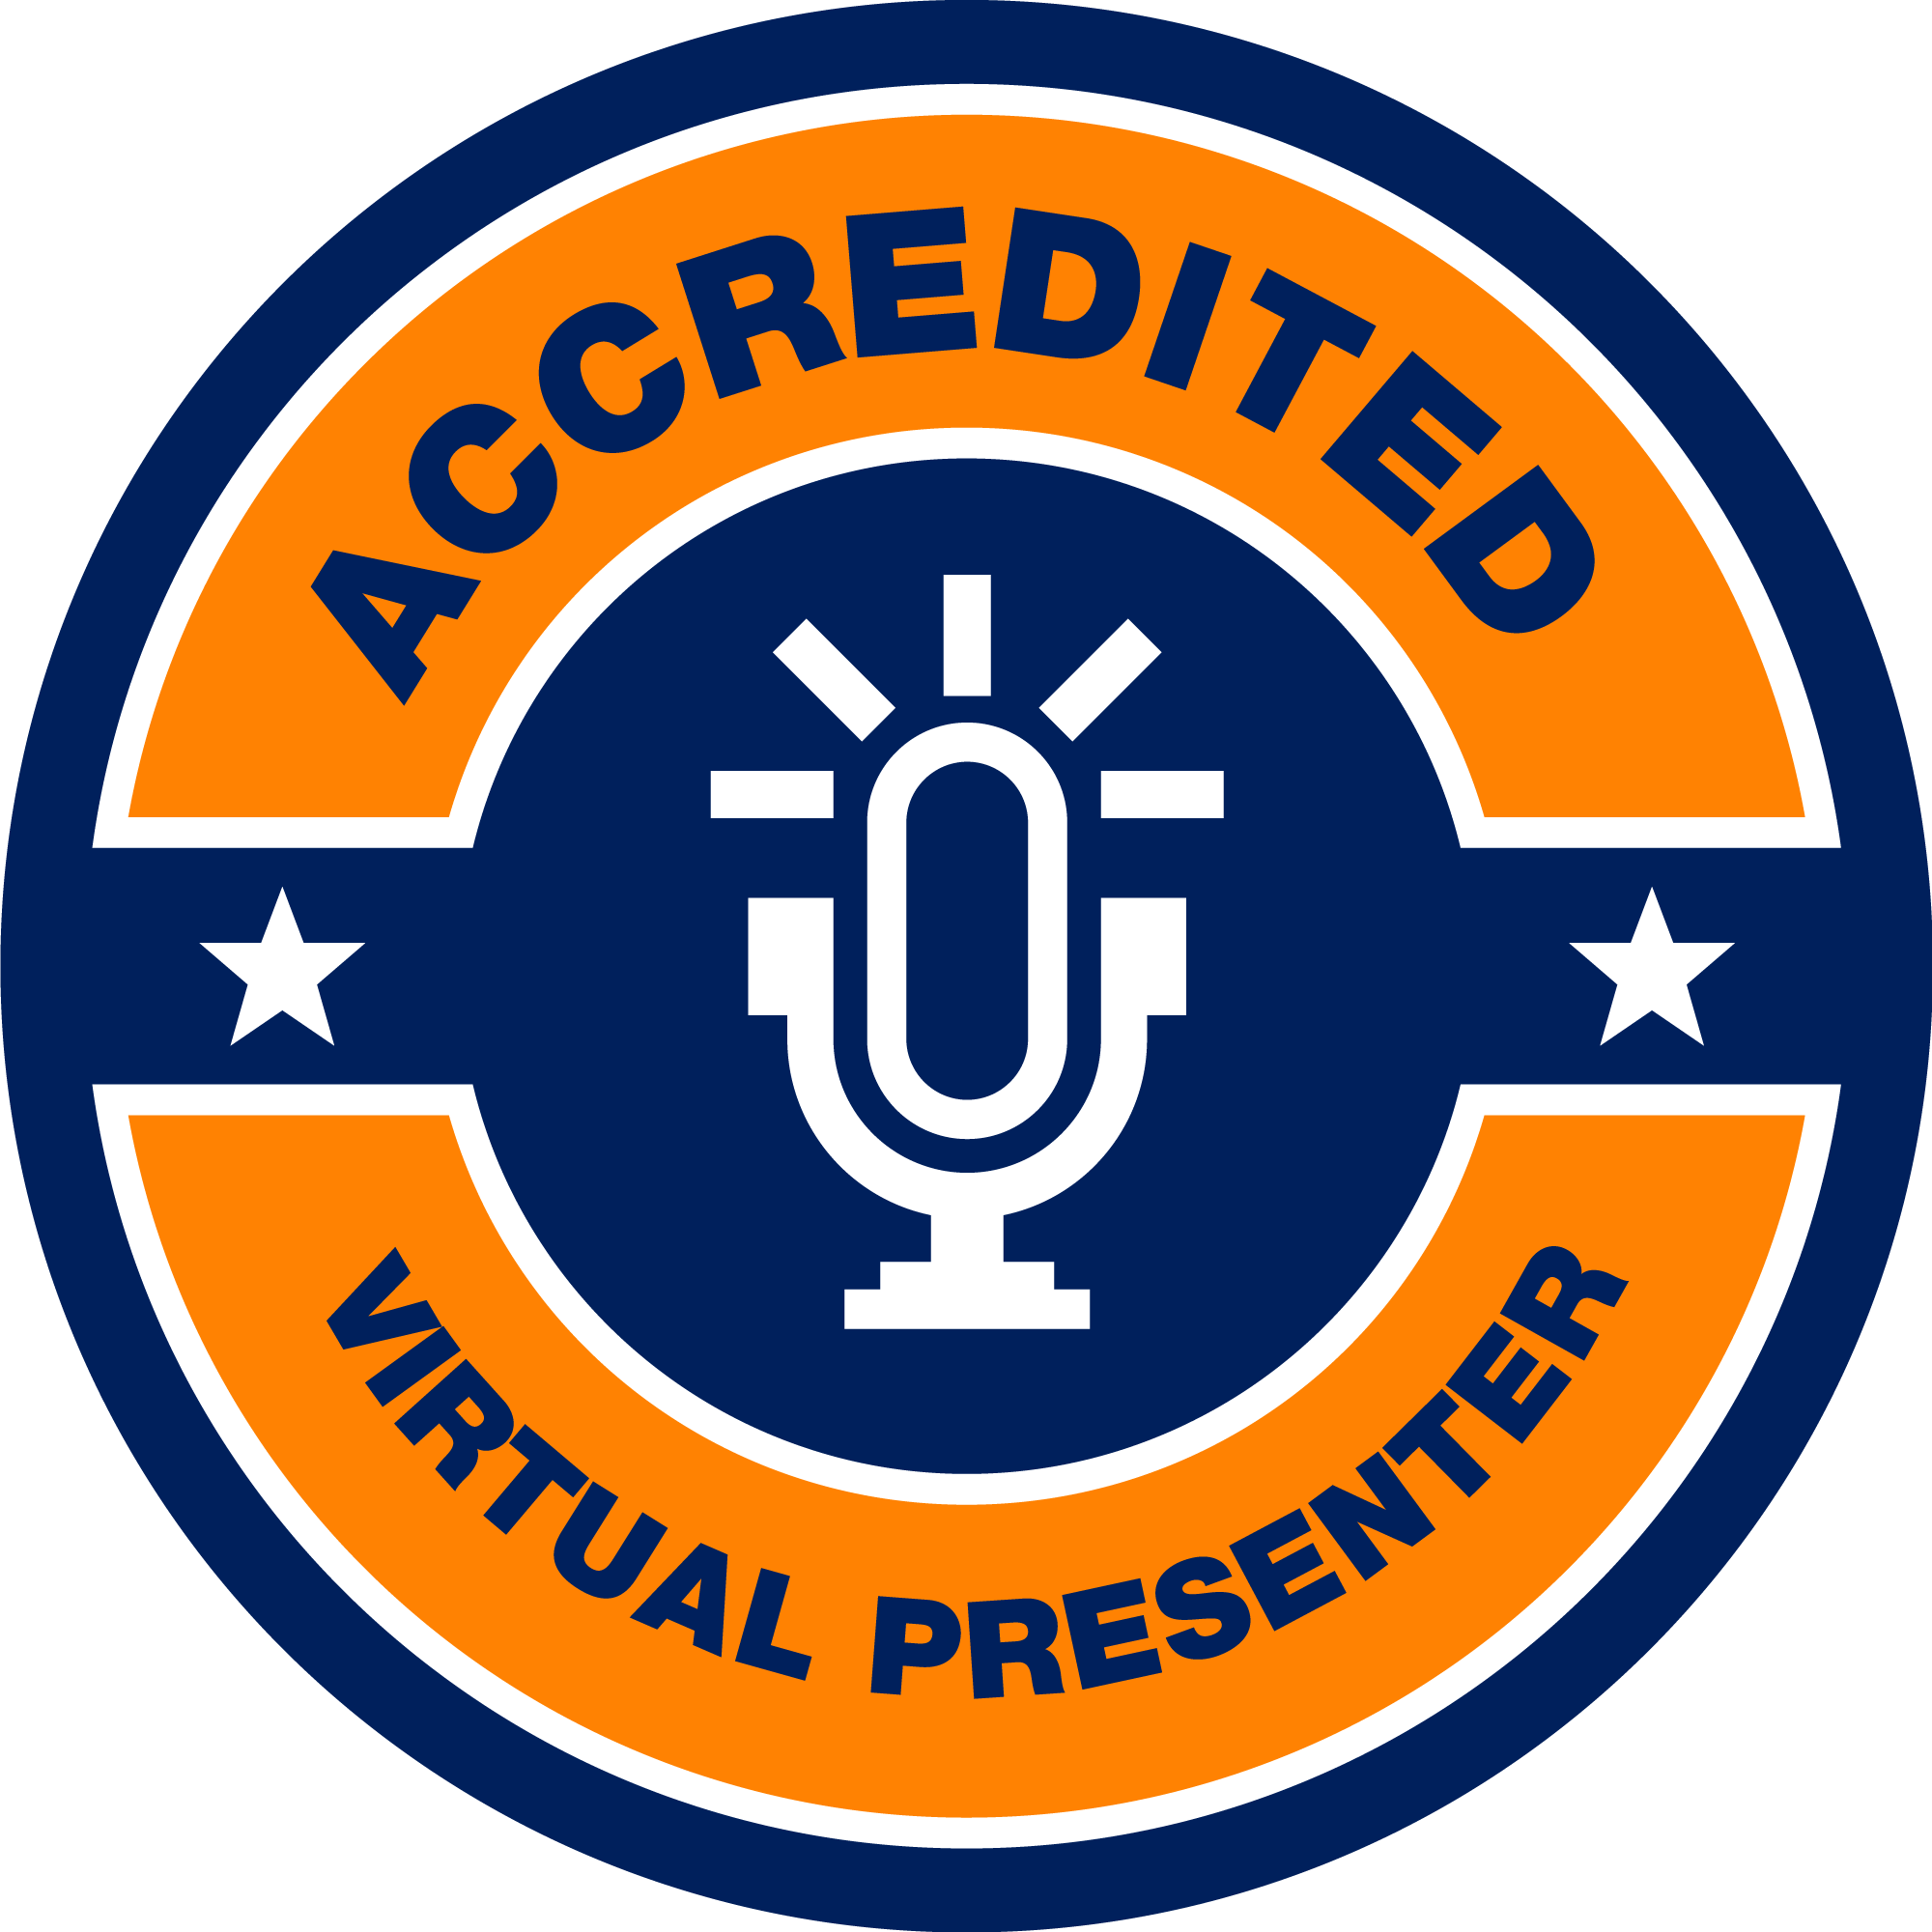 SpeakerMatch Accredited Virtual Presenter